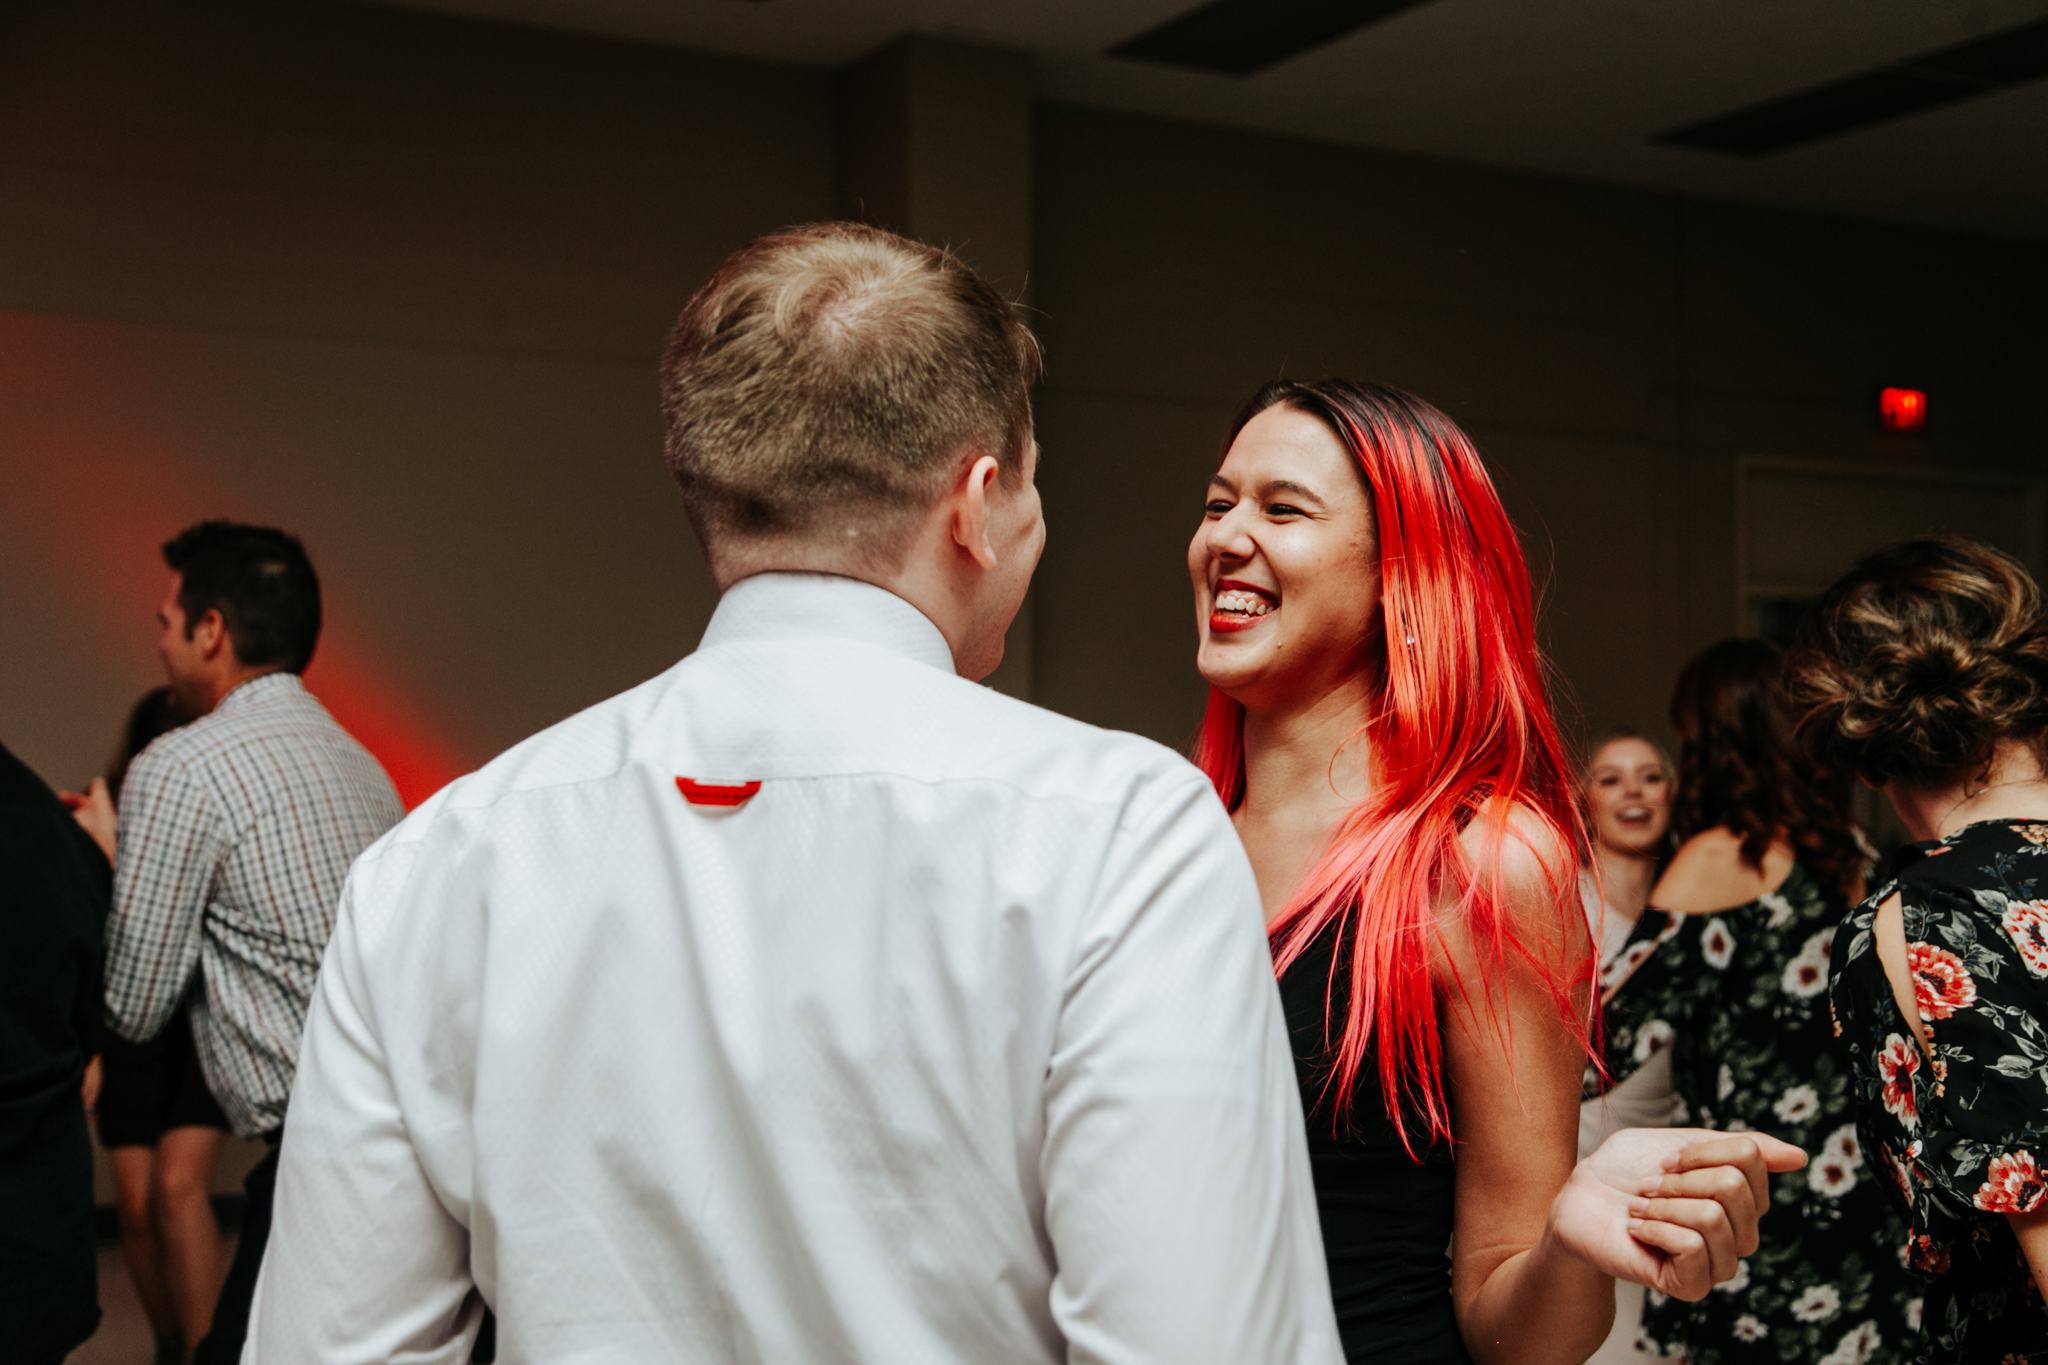 lethbridge-photographer-love-and-be-loved-photography-rocky-mountain-turf-club-reception-katie-kelli-wedding-picture-image-photo-433.jpg